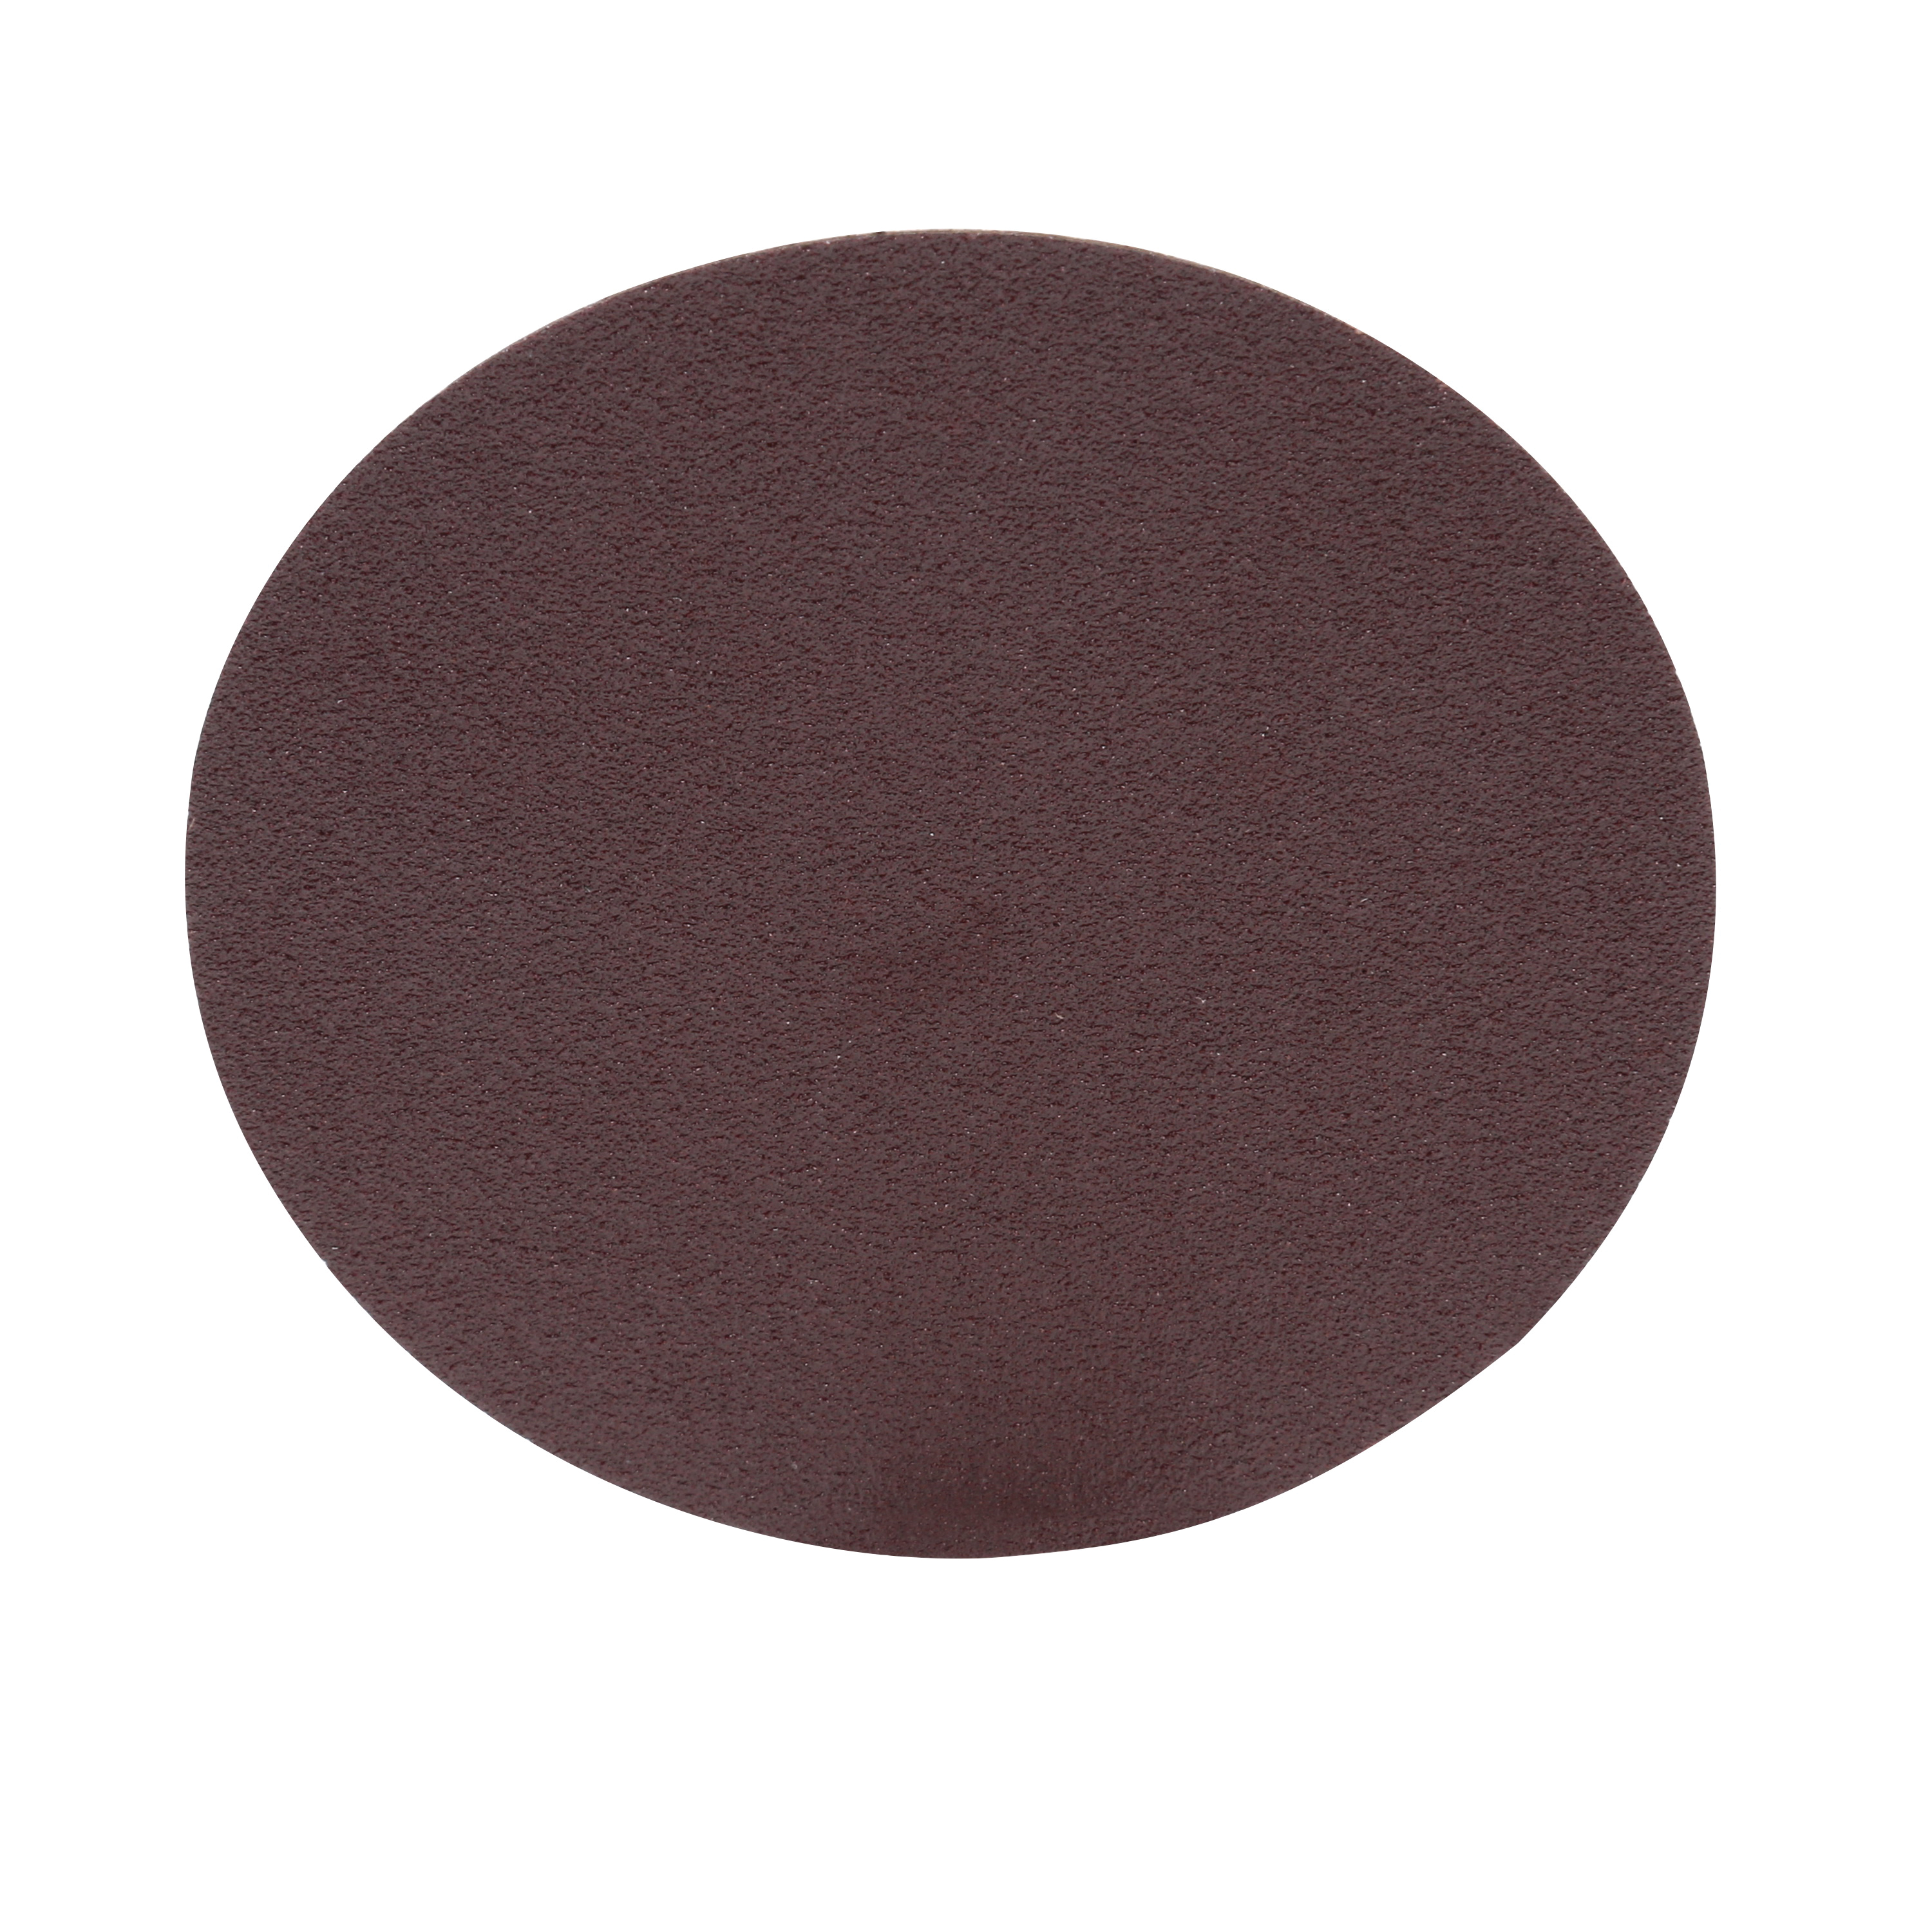 3M™ 051144-01330 Heavy Duty PSA Close Coated Abrasive Disc, 3 in Dia, P120 Grit, Fine Grade, Aluminum Oxide Abrasive, Cloth Backing